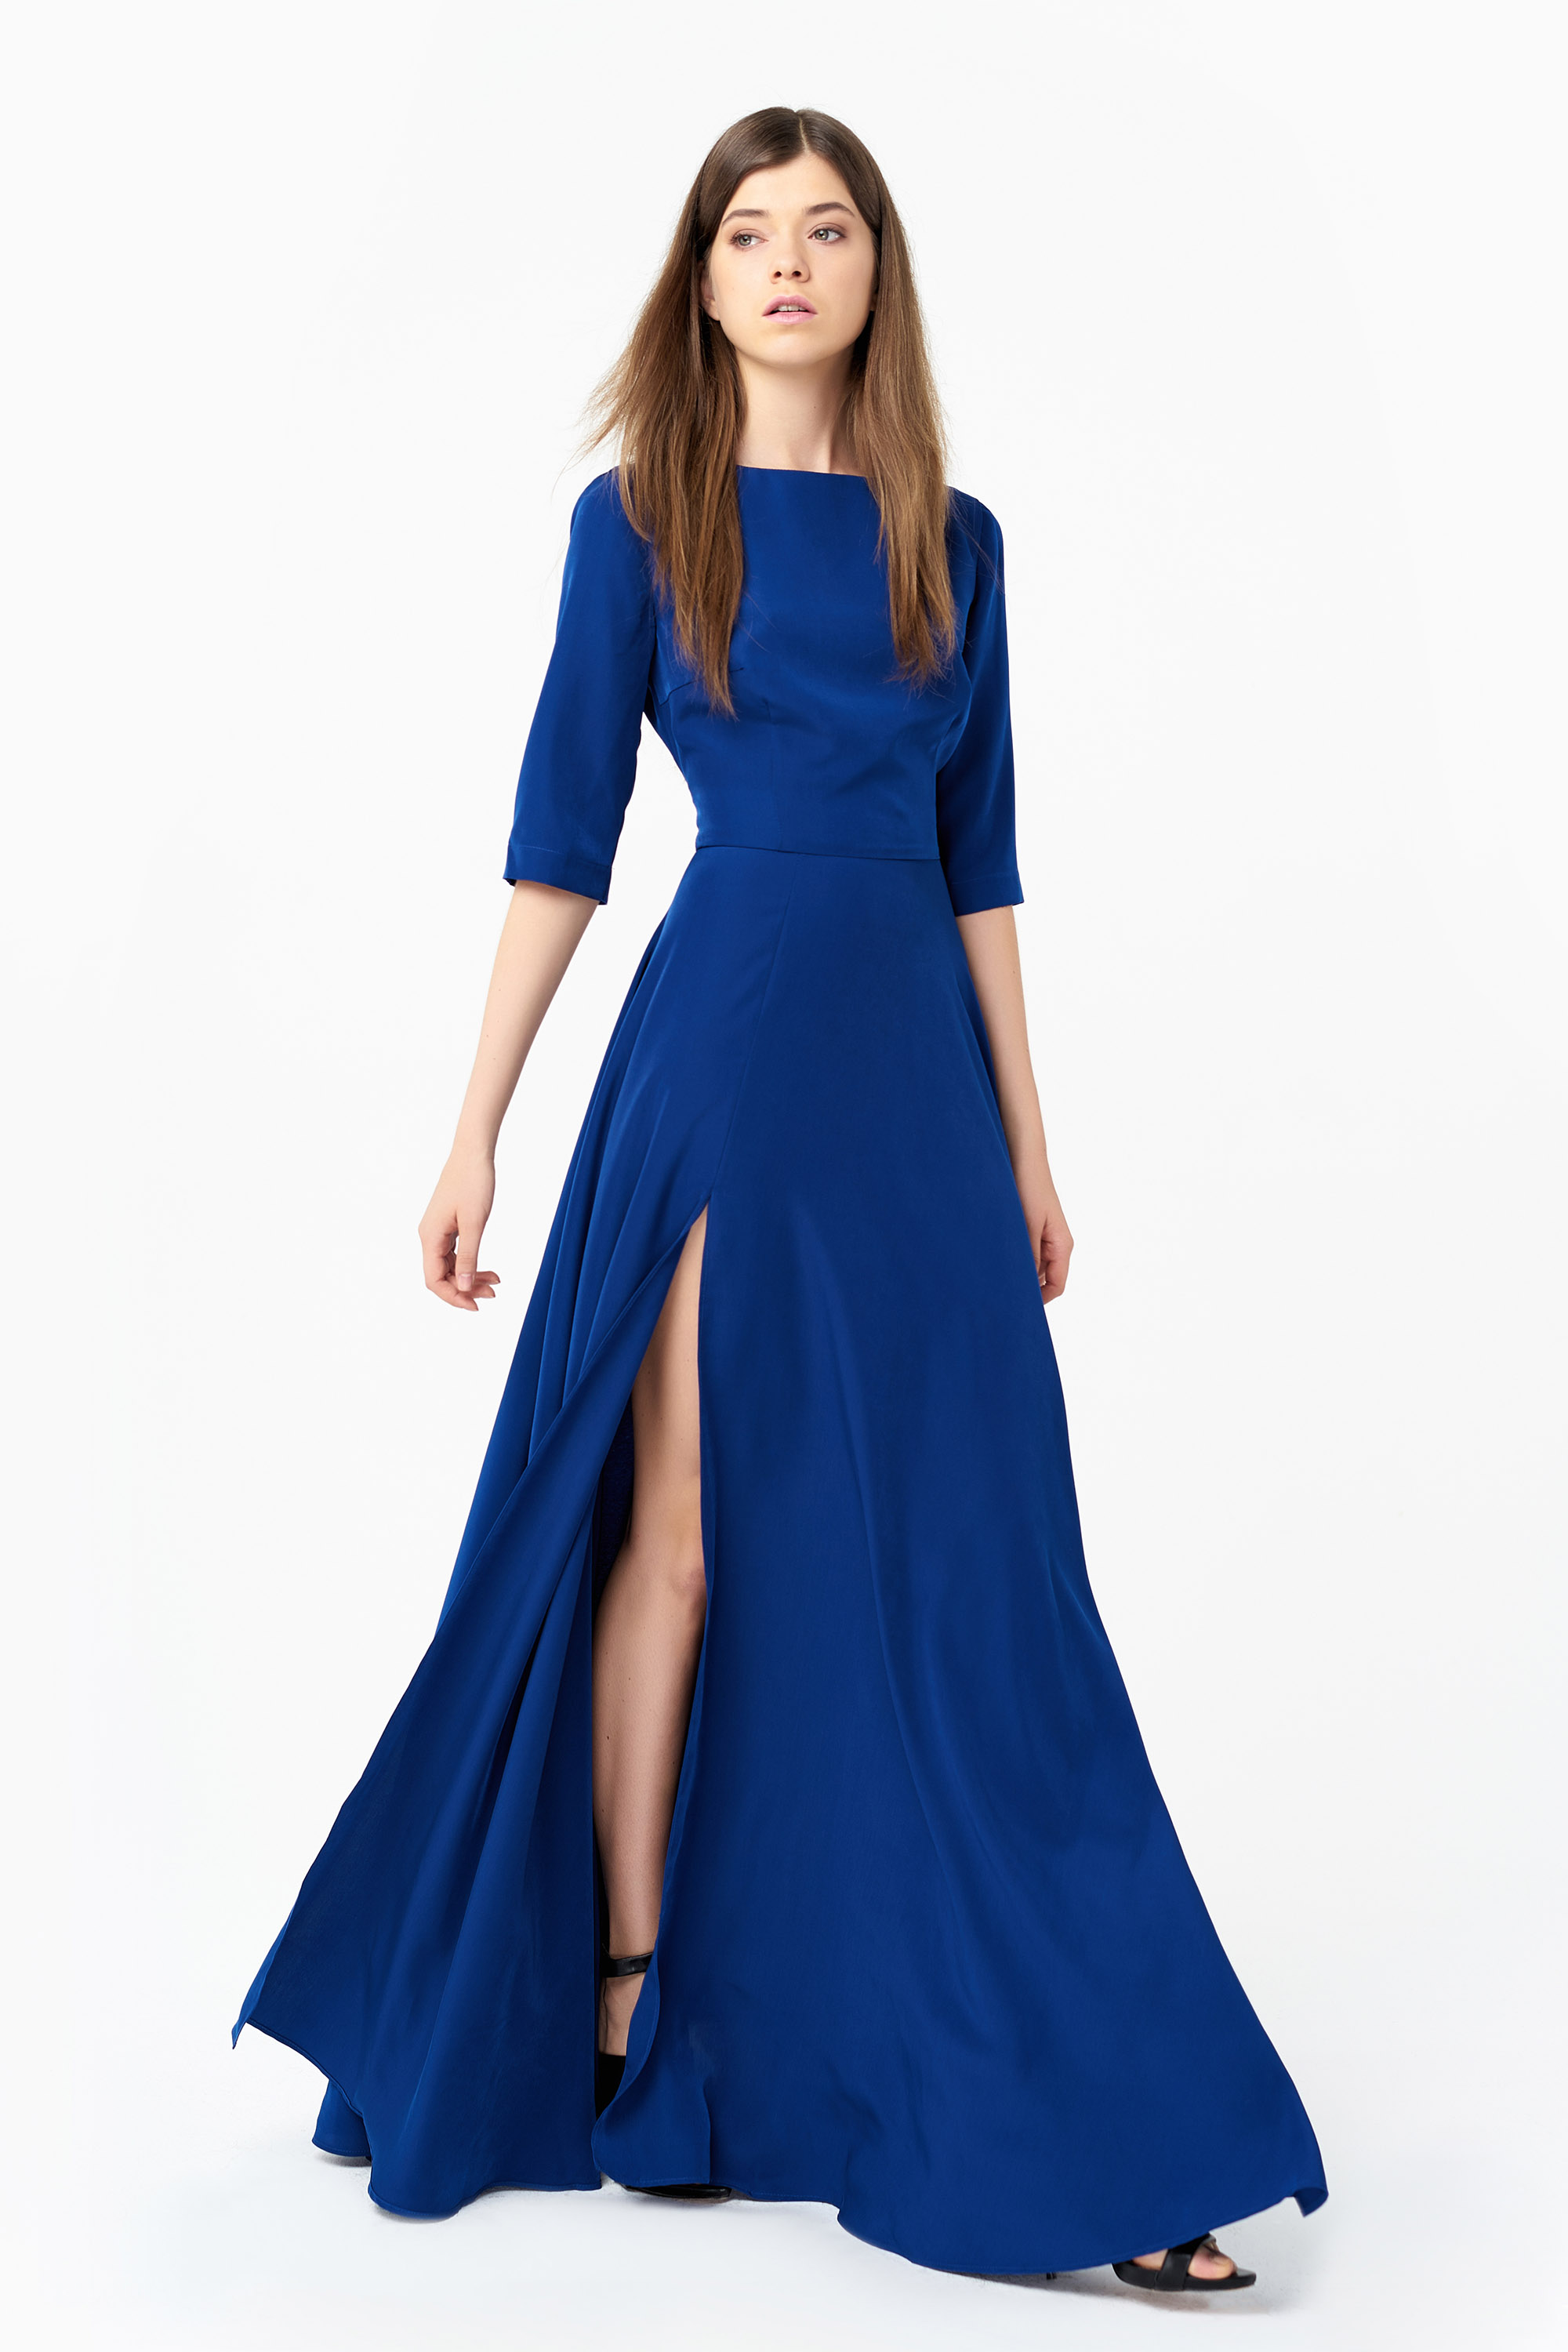 silk dresses flattering long silk dress at anastasiia ivanova nduxgmk